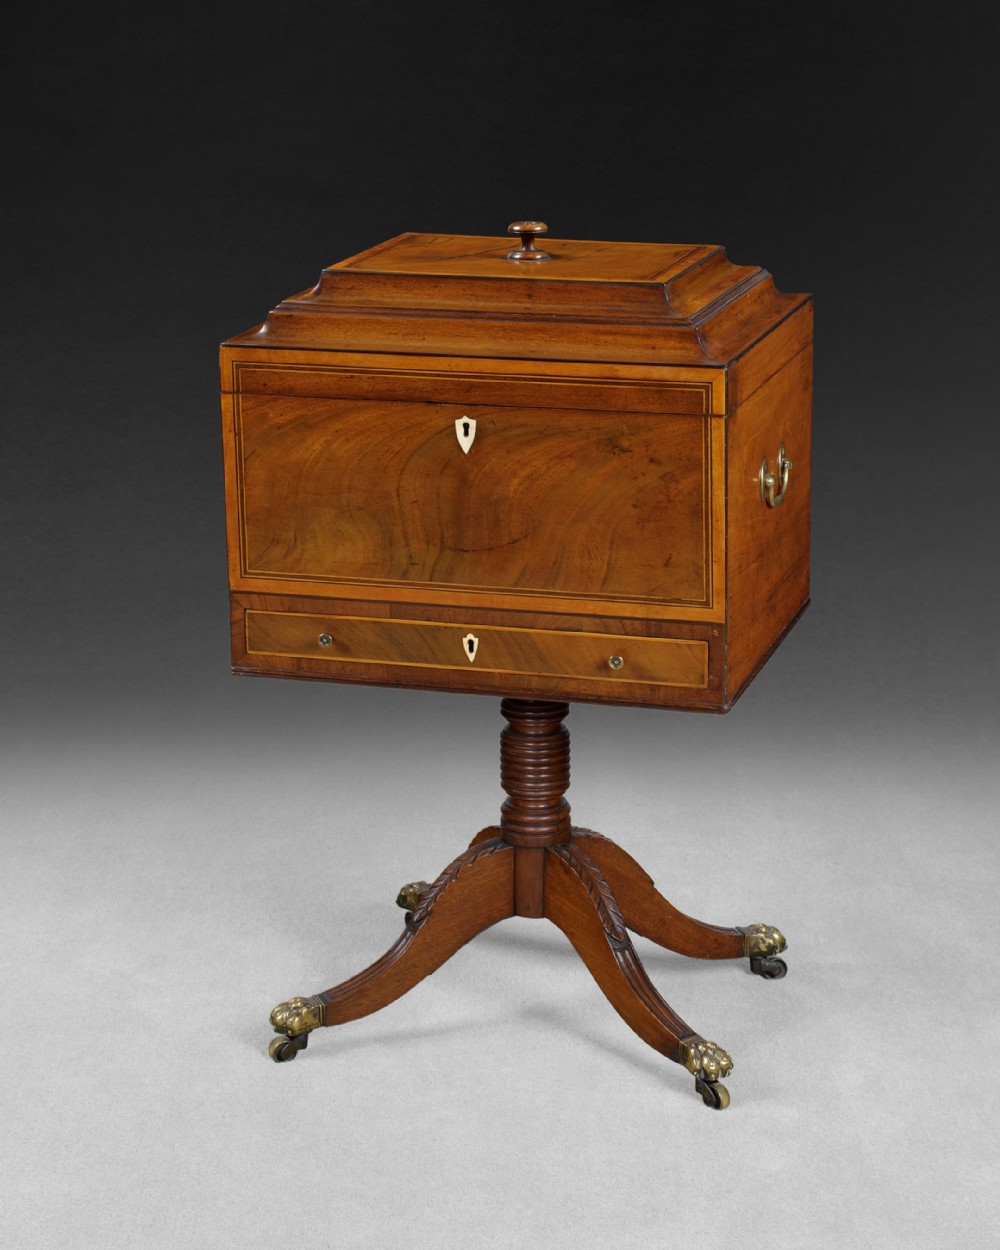 regency mahogany and satinwood teapoy with brass carrying handles